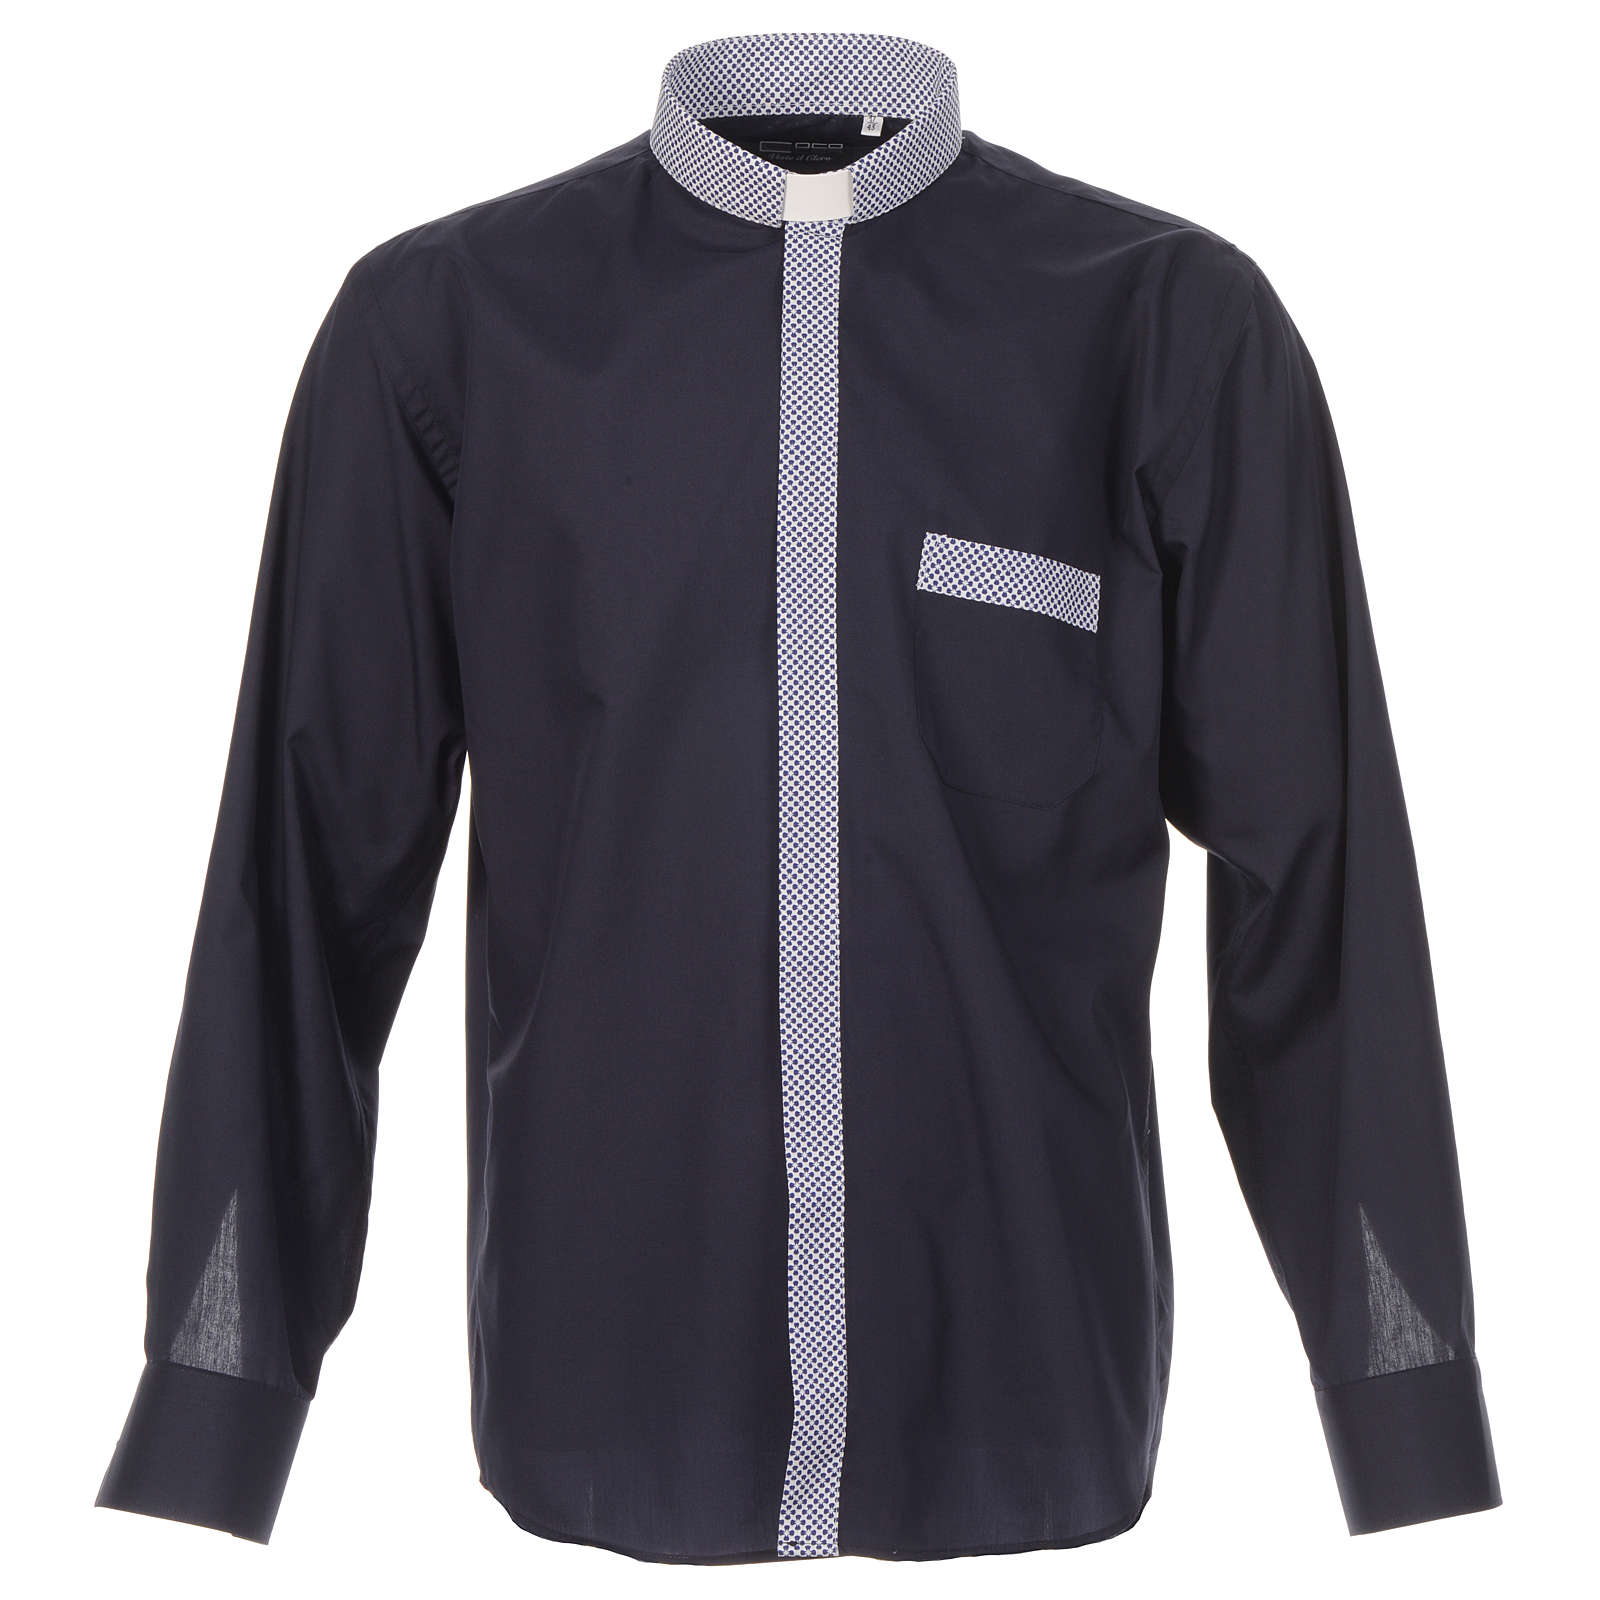 Blue long sleeve clergy shirt with contrast crosses 4